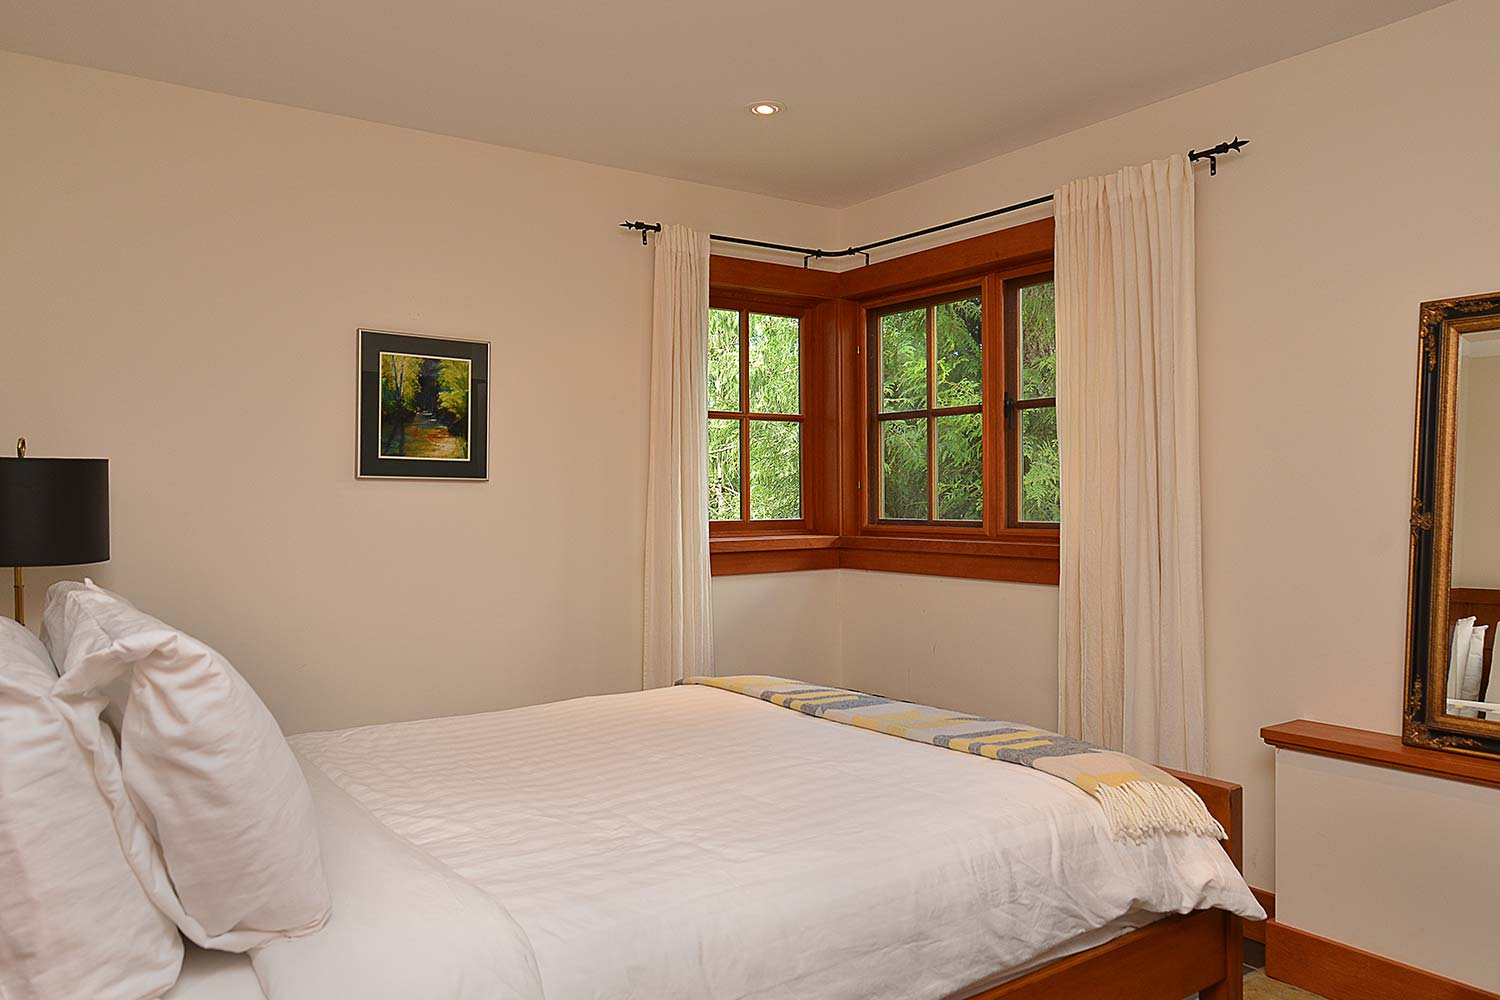 The Garden Suite bedroom at this premium holiday home features a queen bed and adjacent bathroom with a large tub/shower.